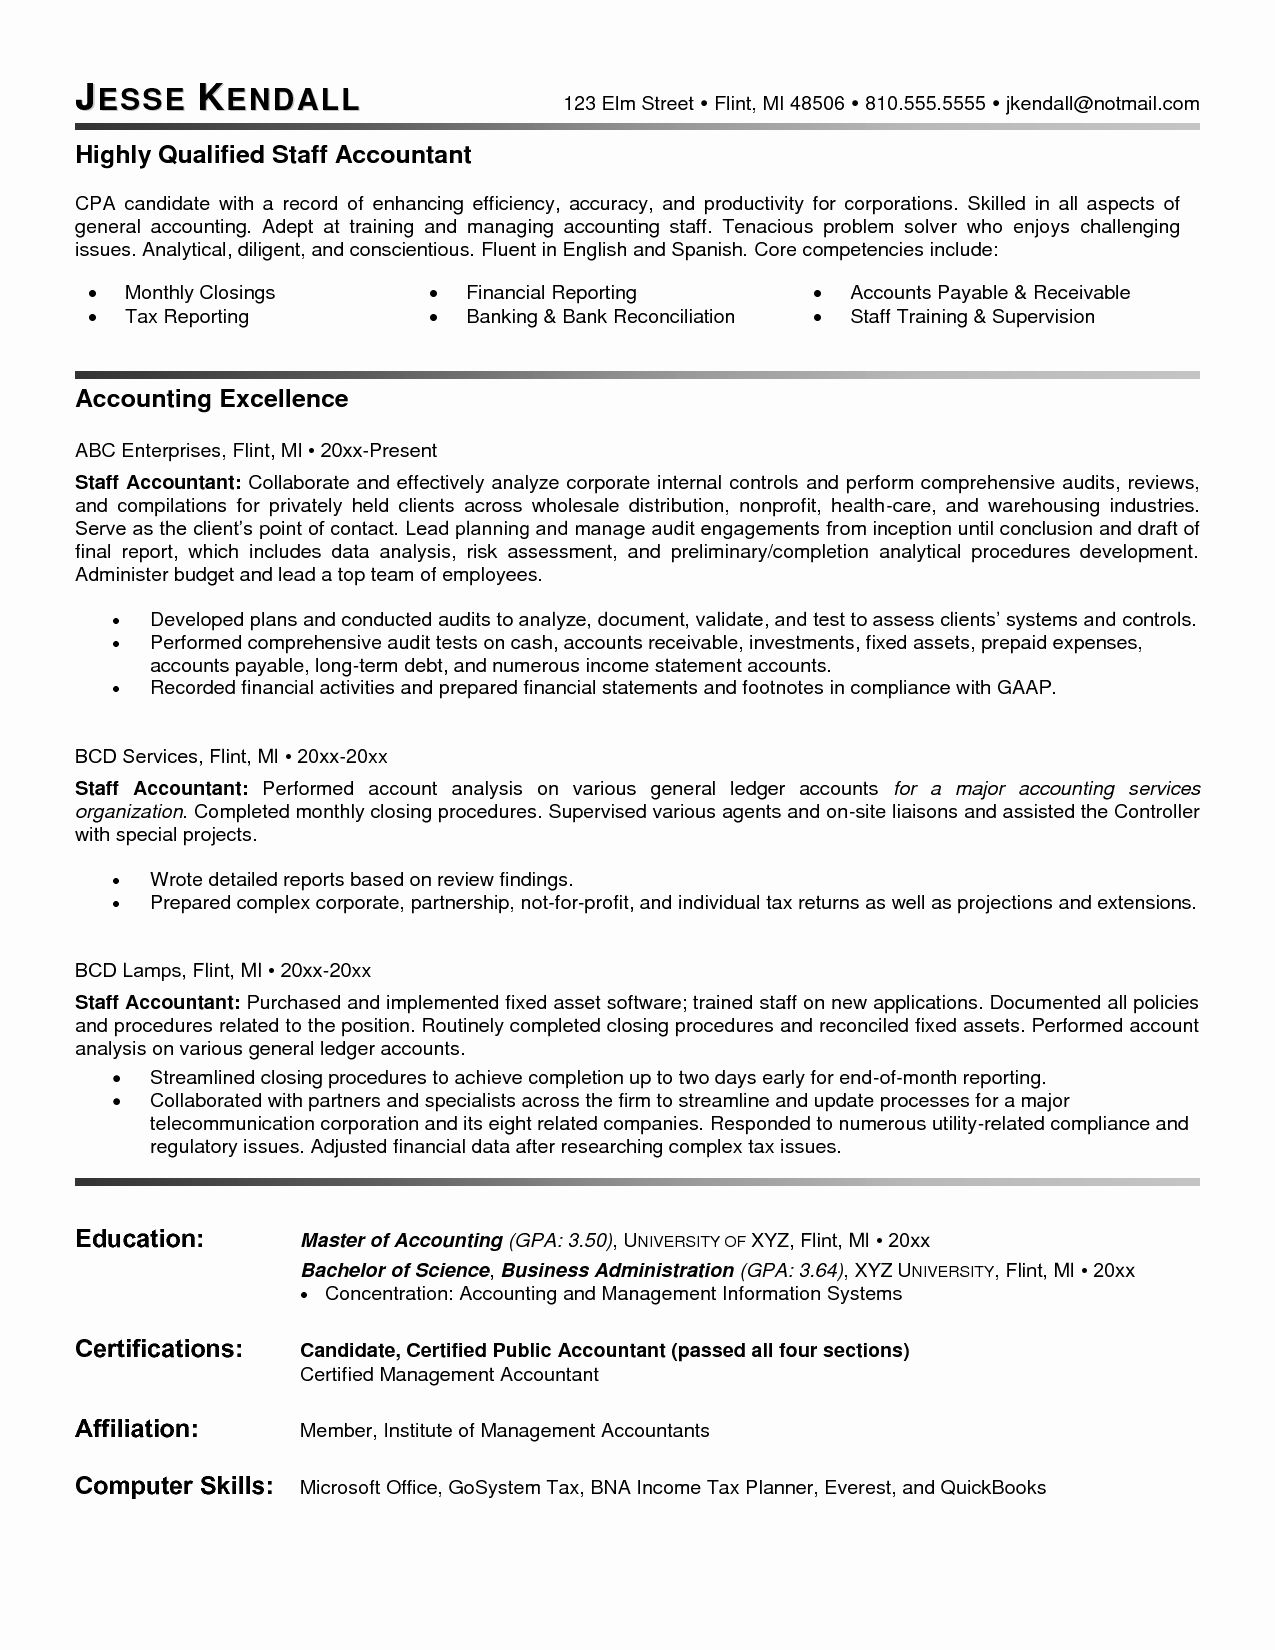 Fixed Assets Manager Sample Resume Fascinating Cv Sle Computer Skills Image Collections  Animes  Pinterest .